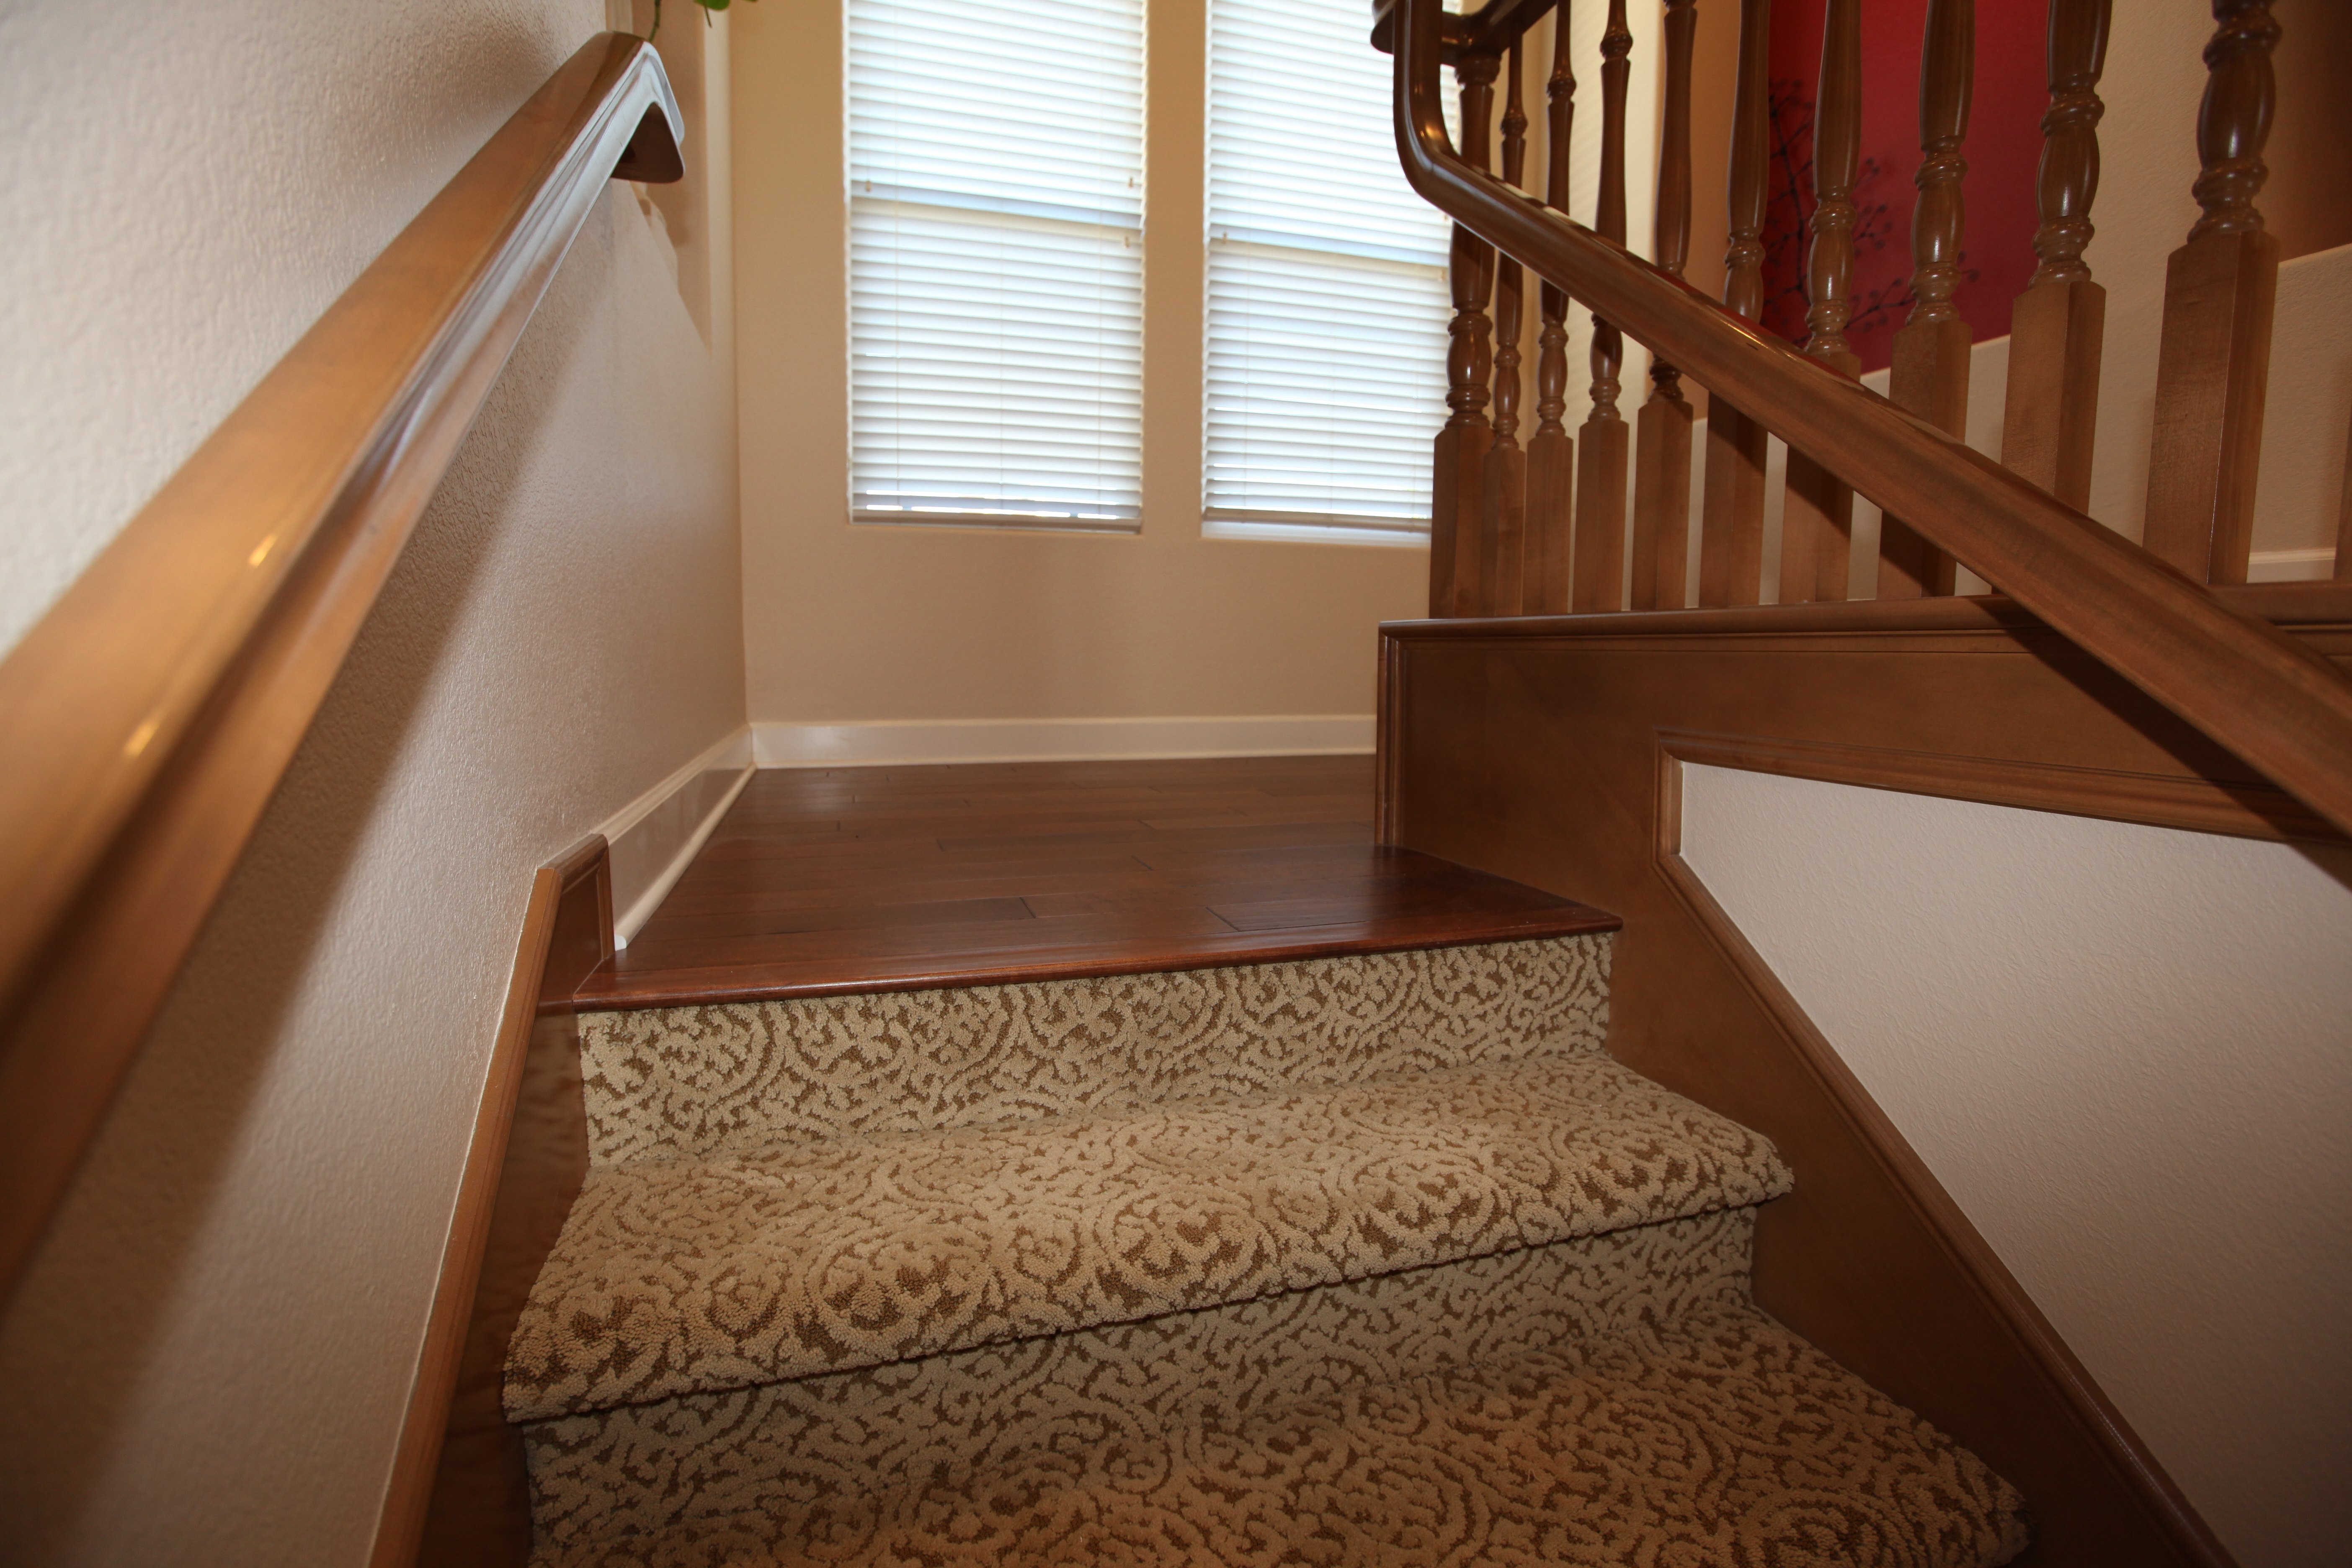 Wood Floor Meets Carpet Stairs